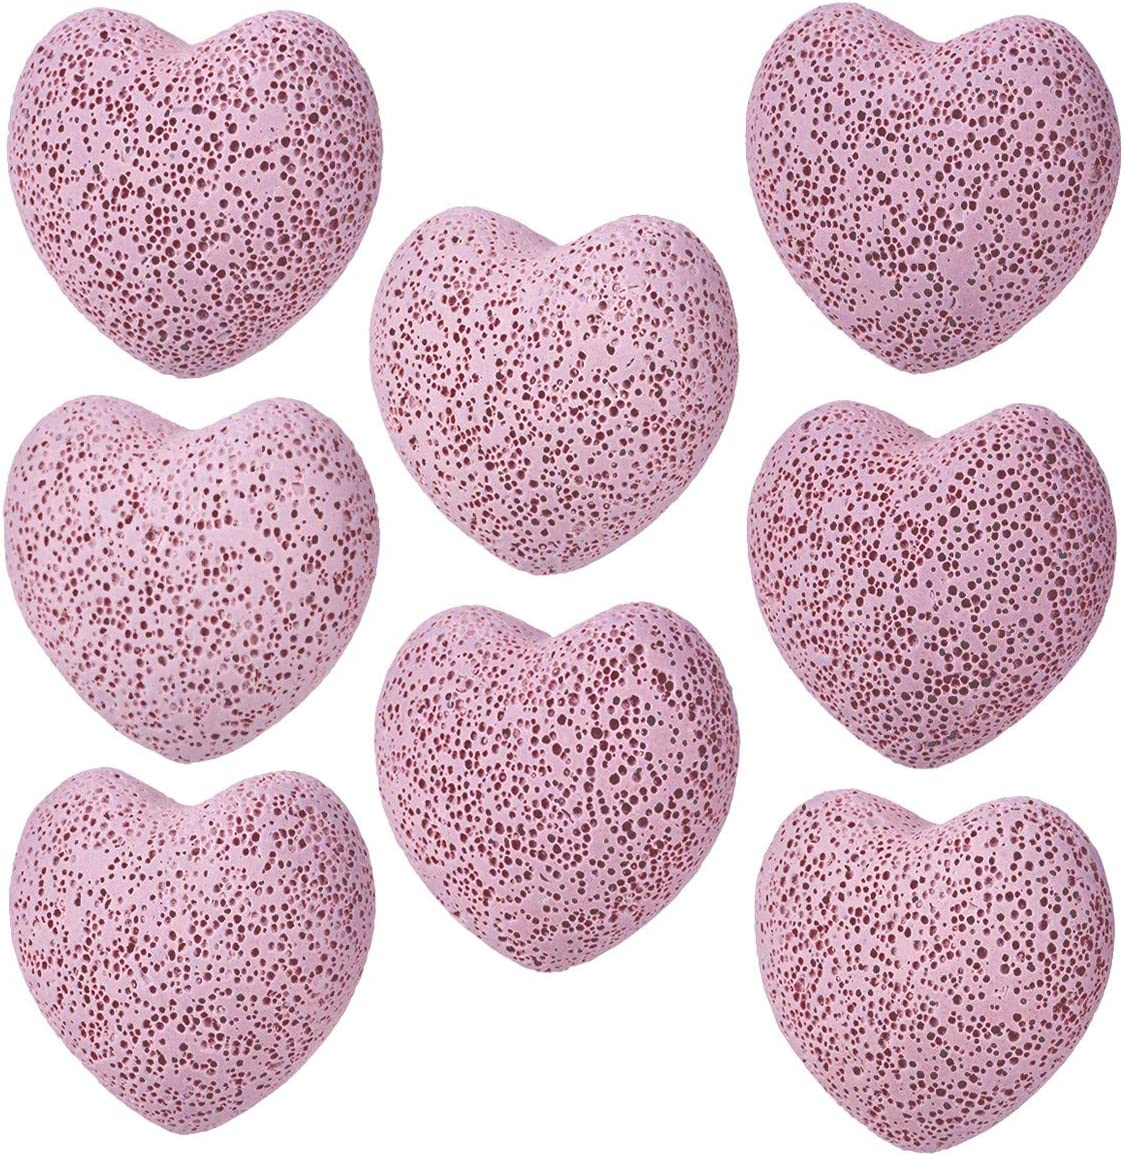 SUNYIK Lava Rock Gemstone Puffy Heart, Natural Pocket Stone Figurine Decoration Aromatherapy Essential Oil Diffuser Set, 1 inch, Pink, Pack of 10